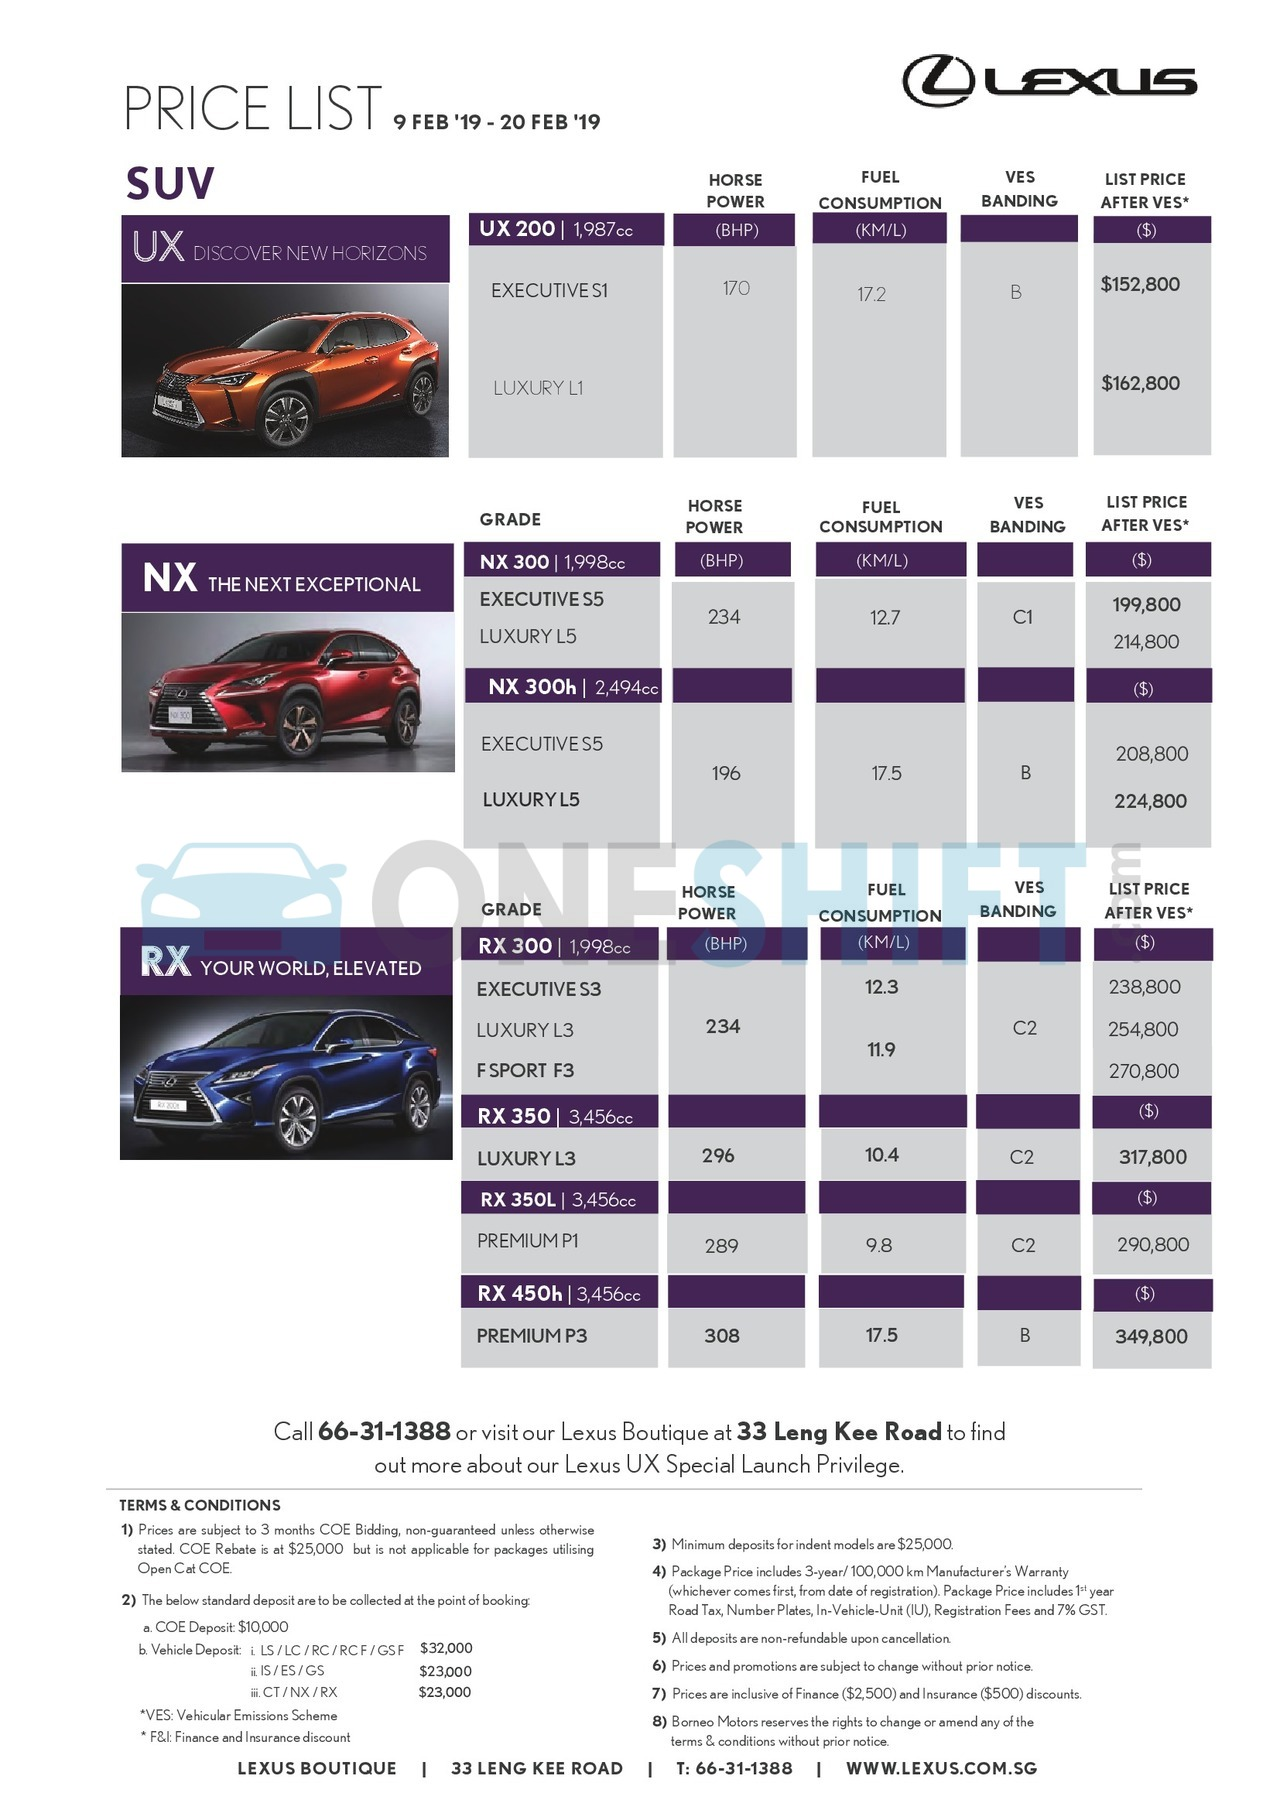 lexus Price List 2-11-2019 Page 2